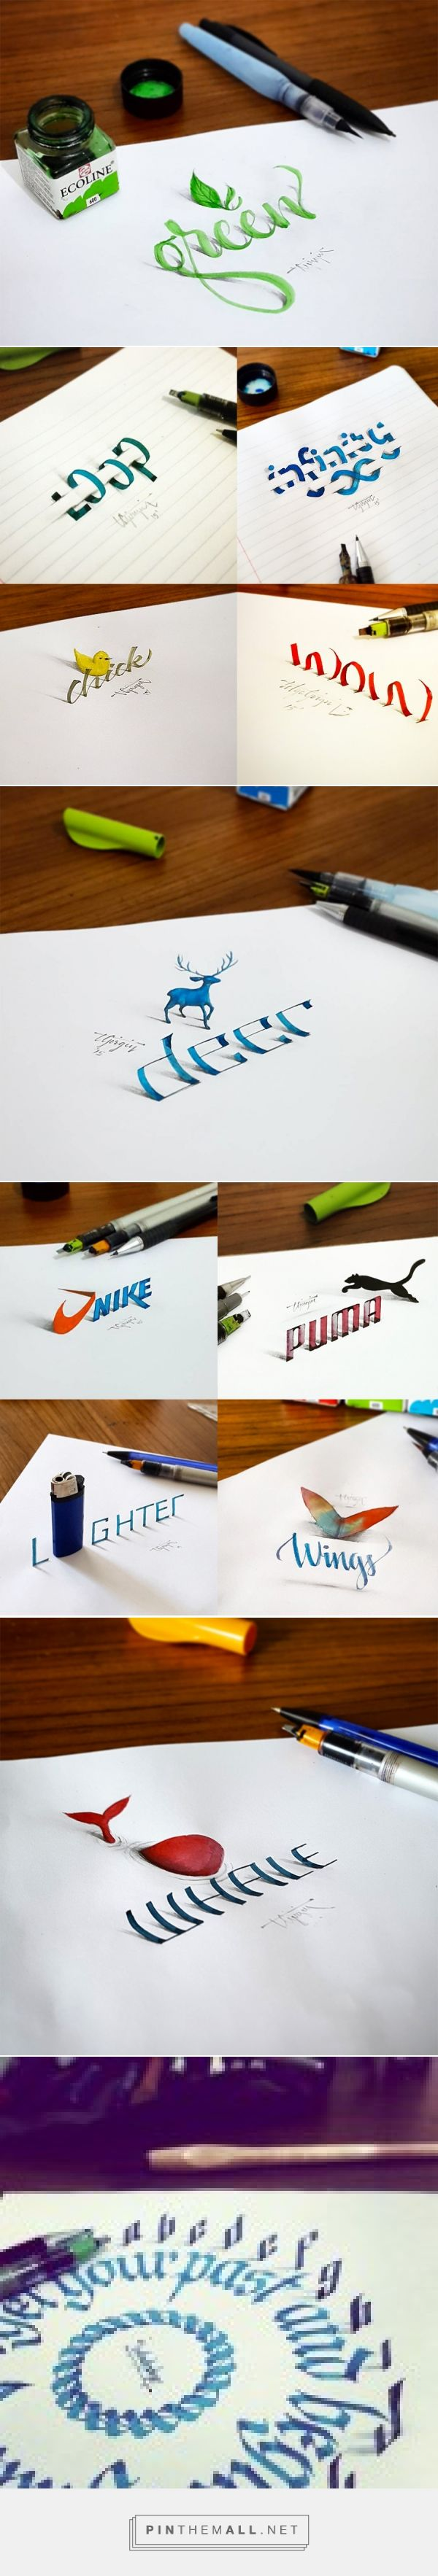 New 3D Calligraphy Exercises by Tolga Girgin | Colossal - created via https://pinthemall.net